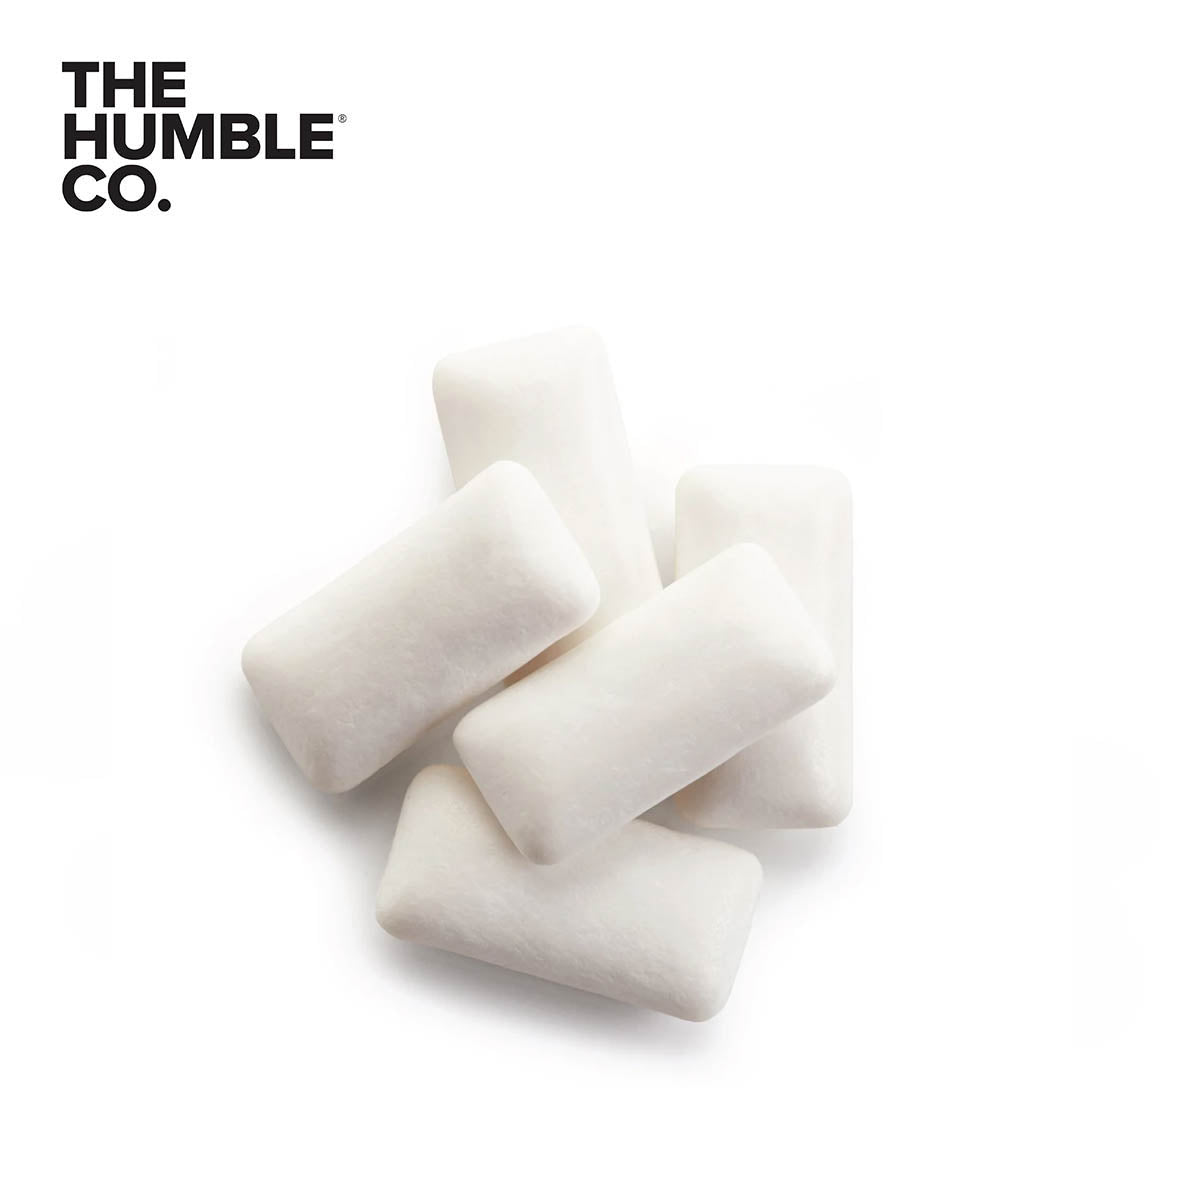 THE HUMBLE CO.  Chewing Gum with Xylitol, Salty Liqourice